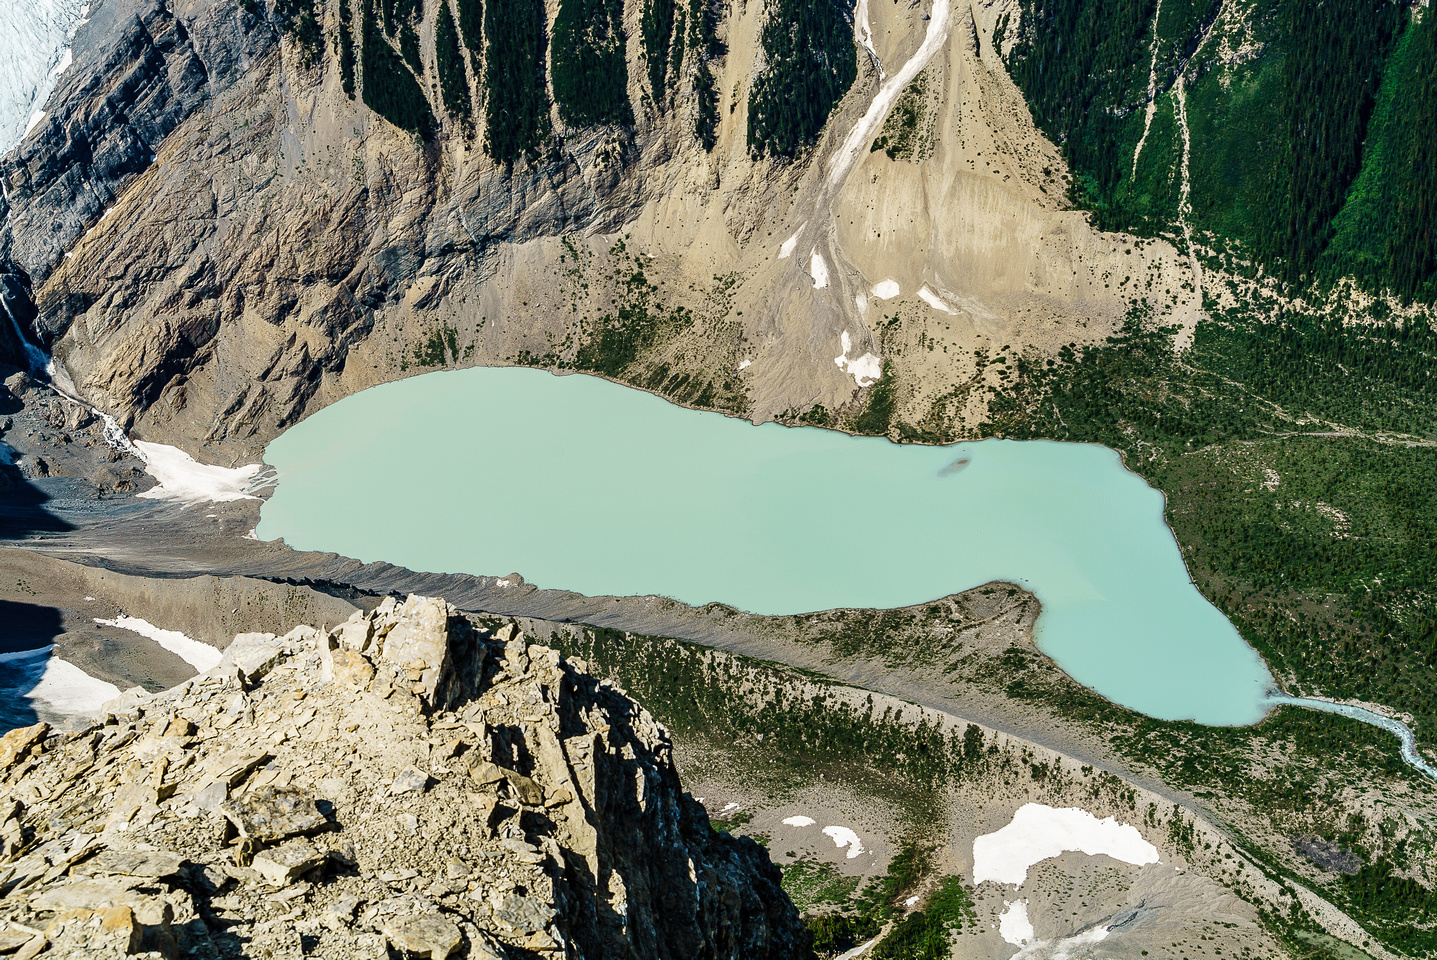 I can't think of a lovelier, more hidden lake than Arctomys. I doubt too many folks have dipped their toes in her waters.